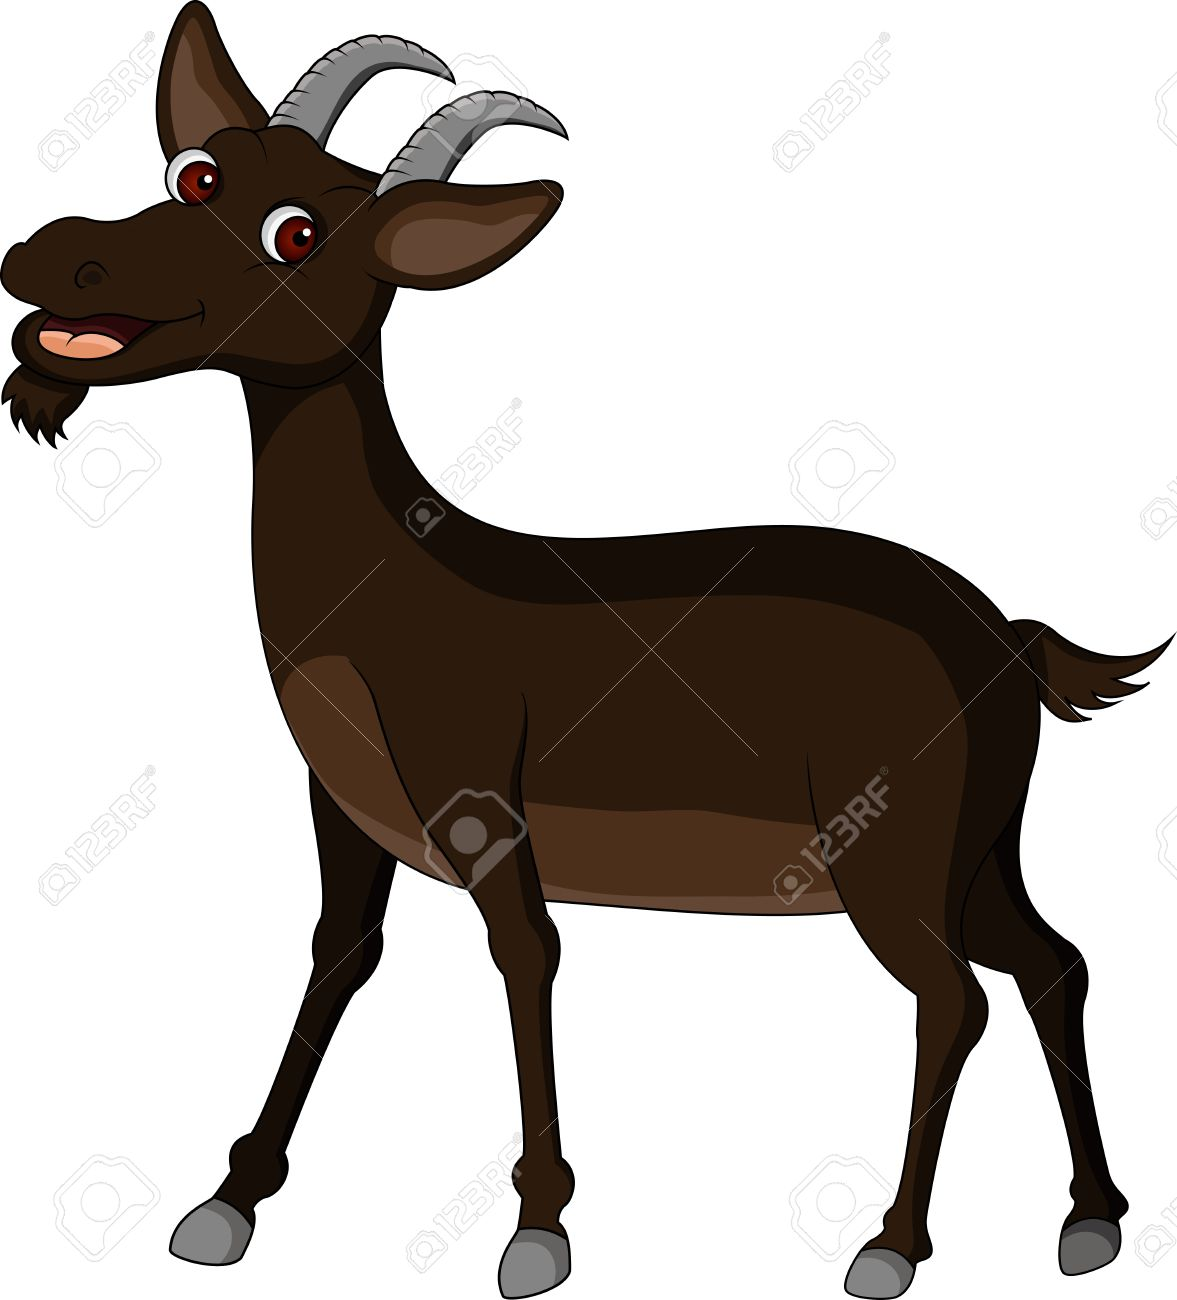 goat cartoon Stock Vector - 14629607